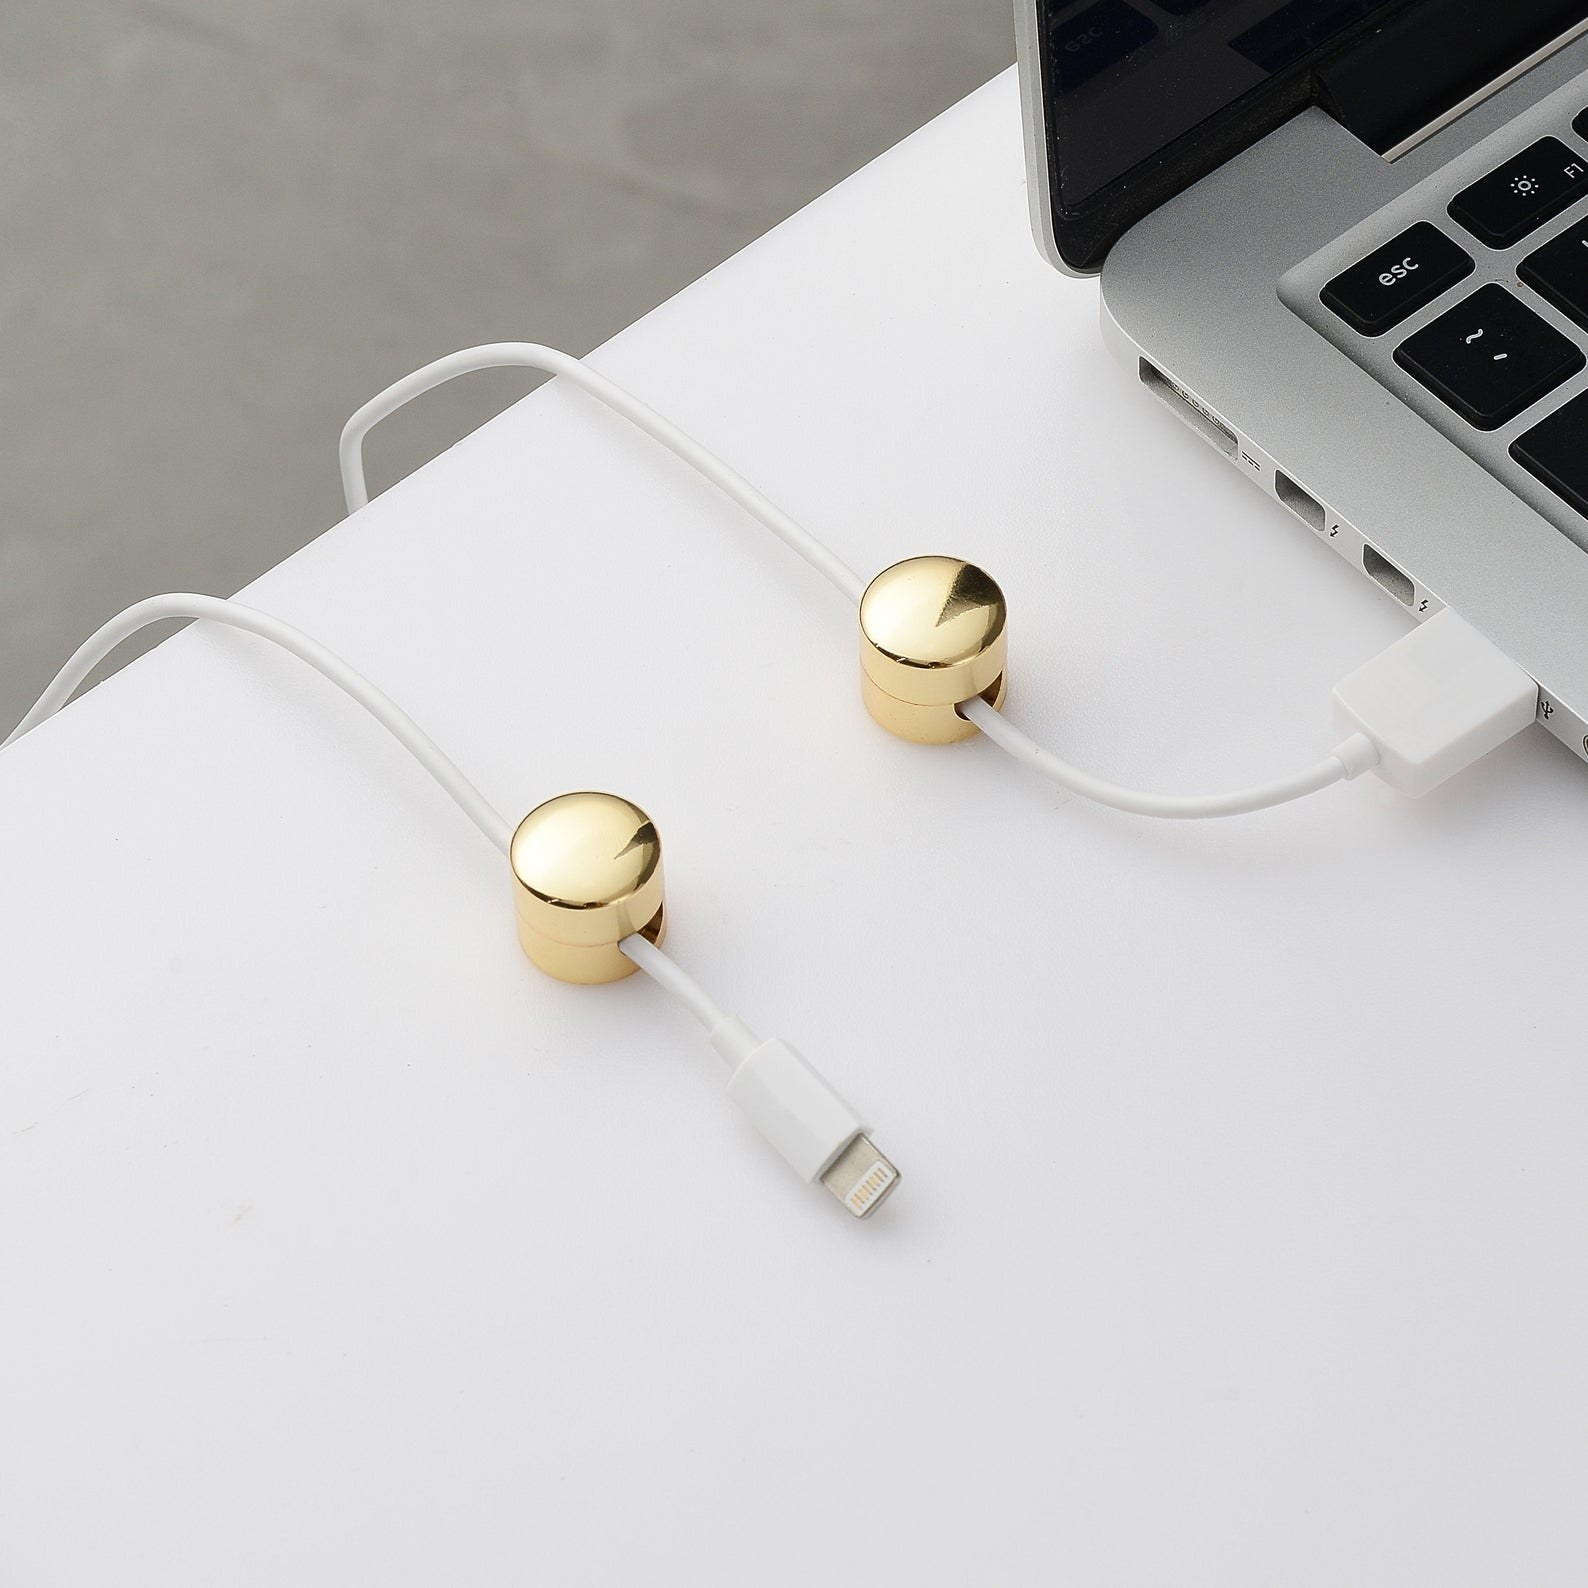 A set of two gold finished round cable organizers installed on a desk with a charger wire running through them